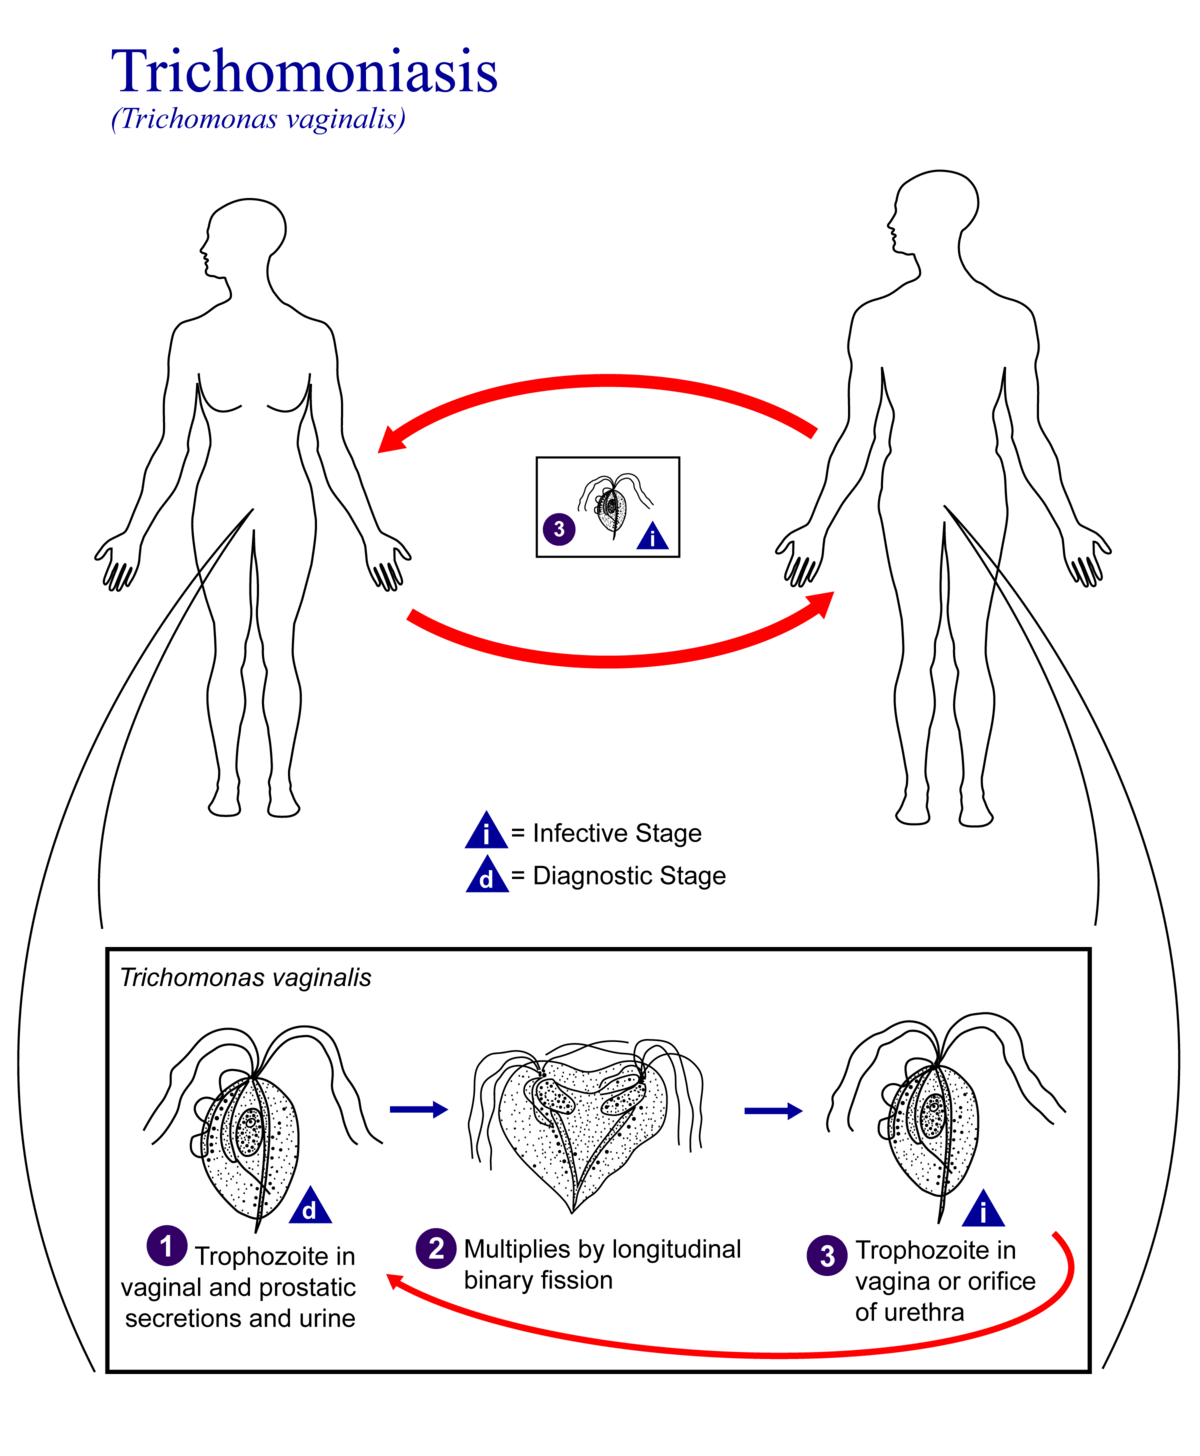 hiv and the body diagram